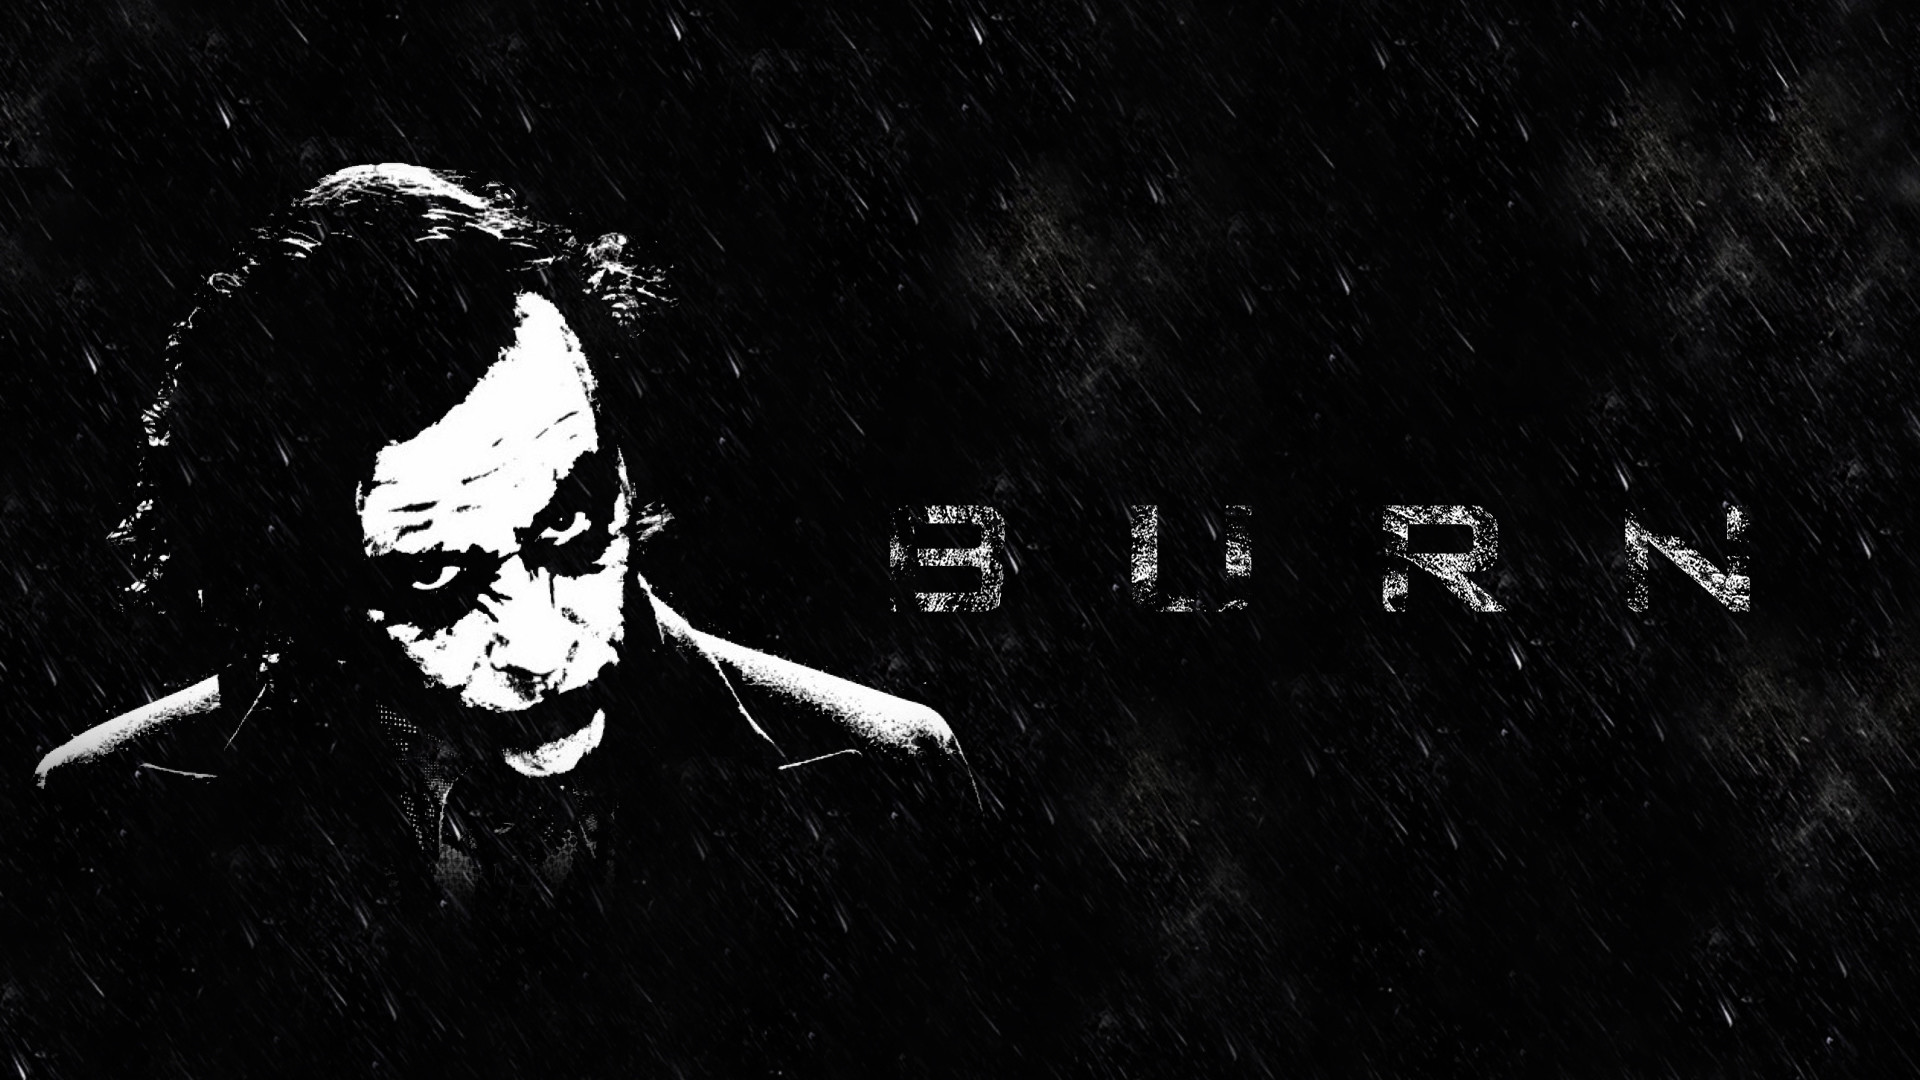 1920x1080 The Joker Wallpapers 1920×1080 The Joker Dark Knight Wallpapers (53  Wallpapers) | Adorable Wallpapers | Desktop | Pinterest | Dark knight  wallpaper, ...